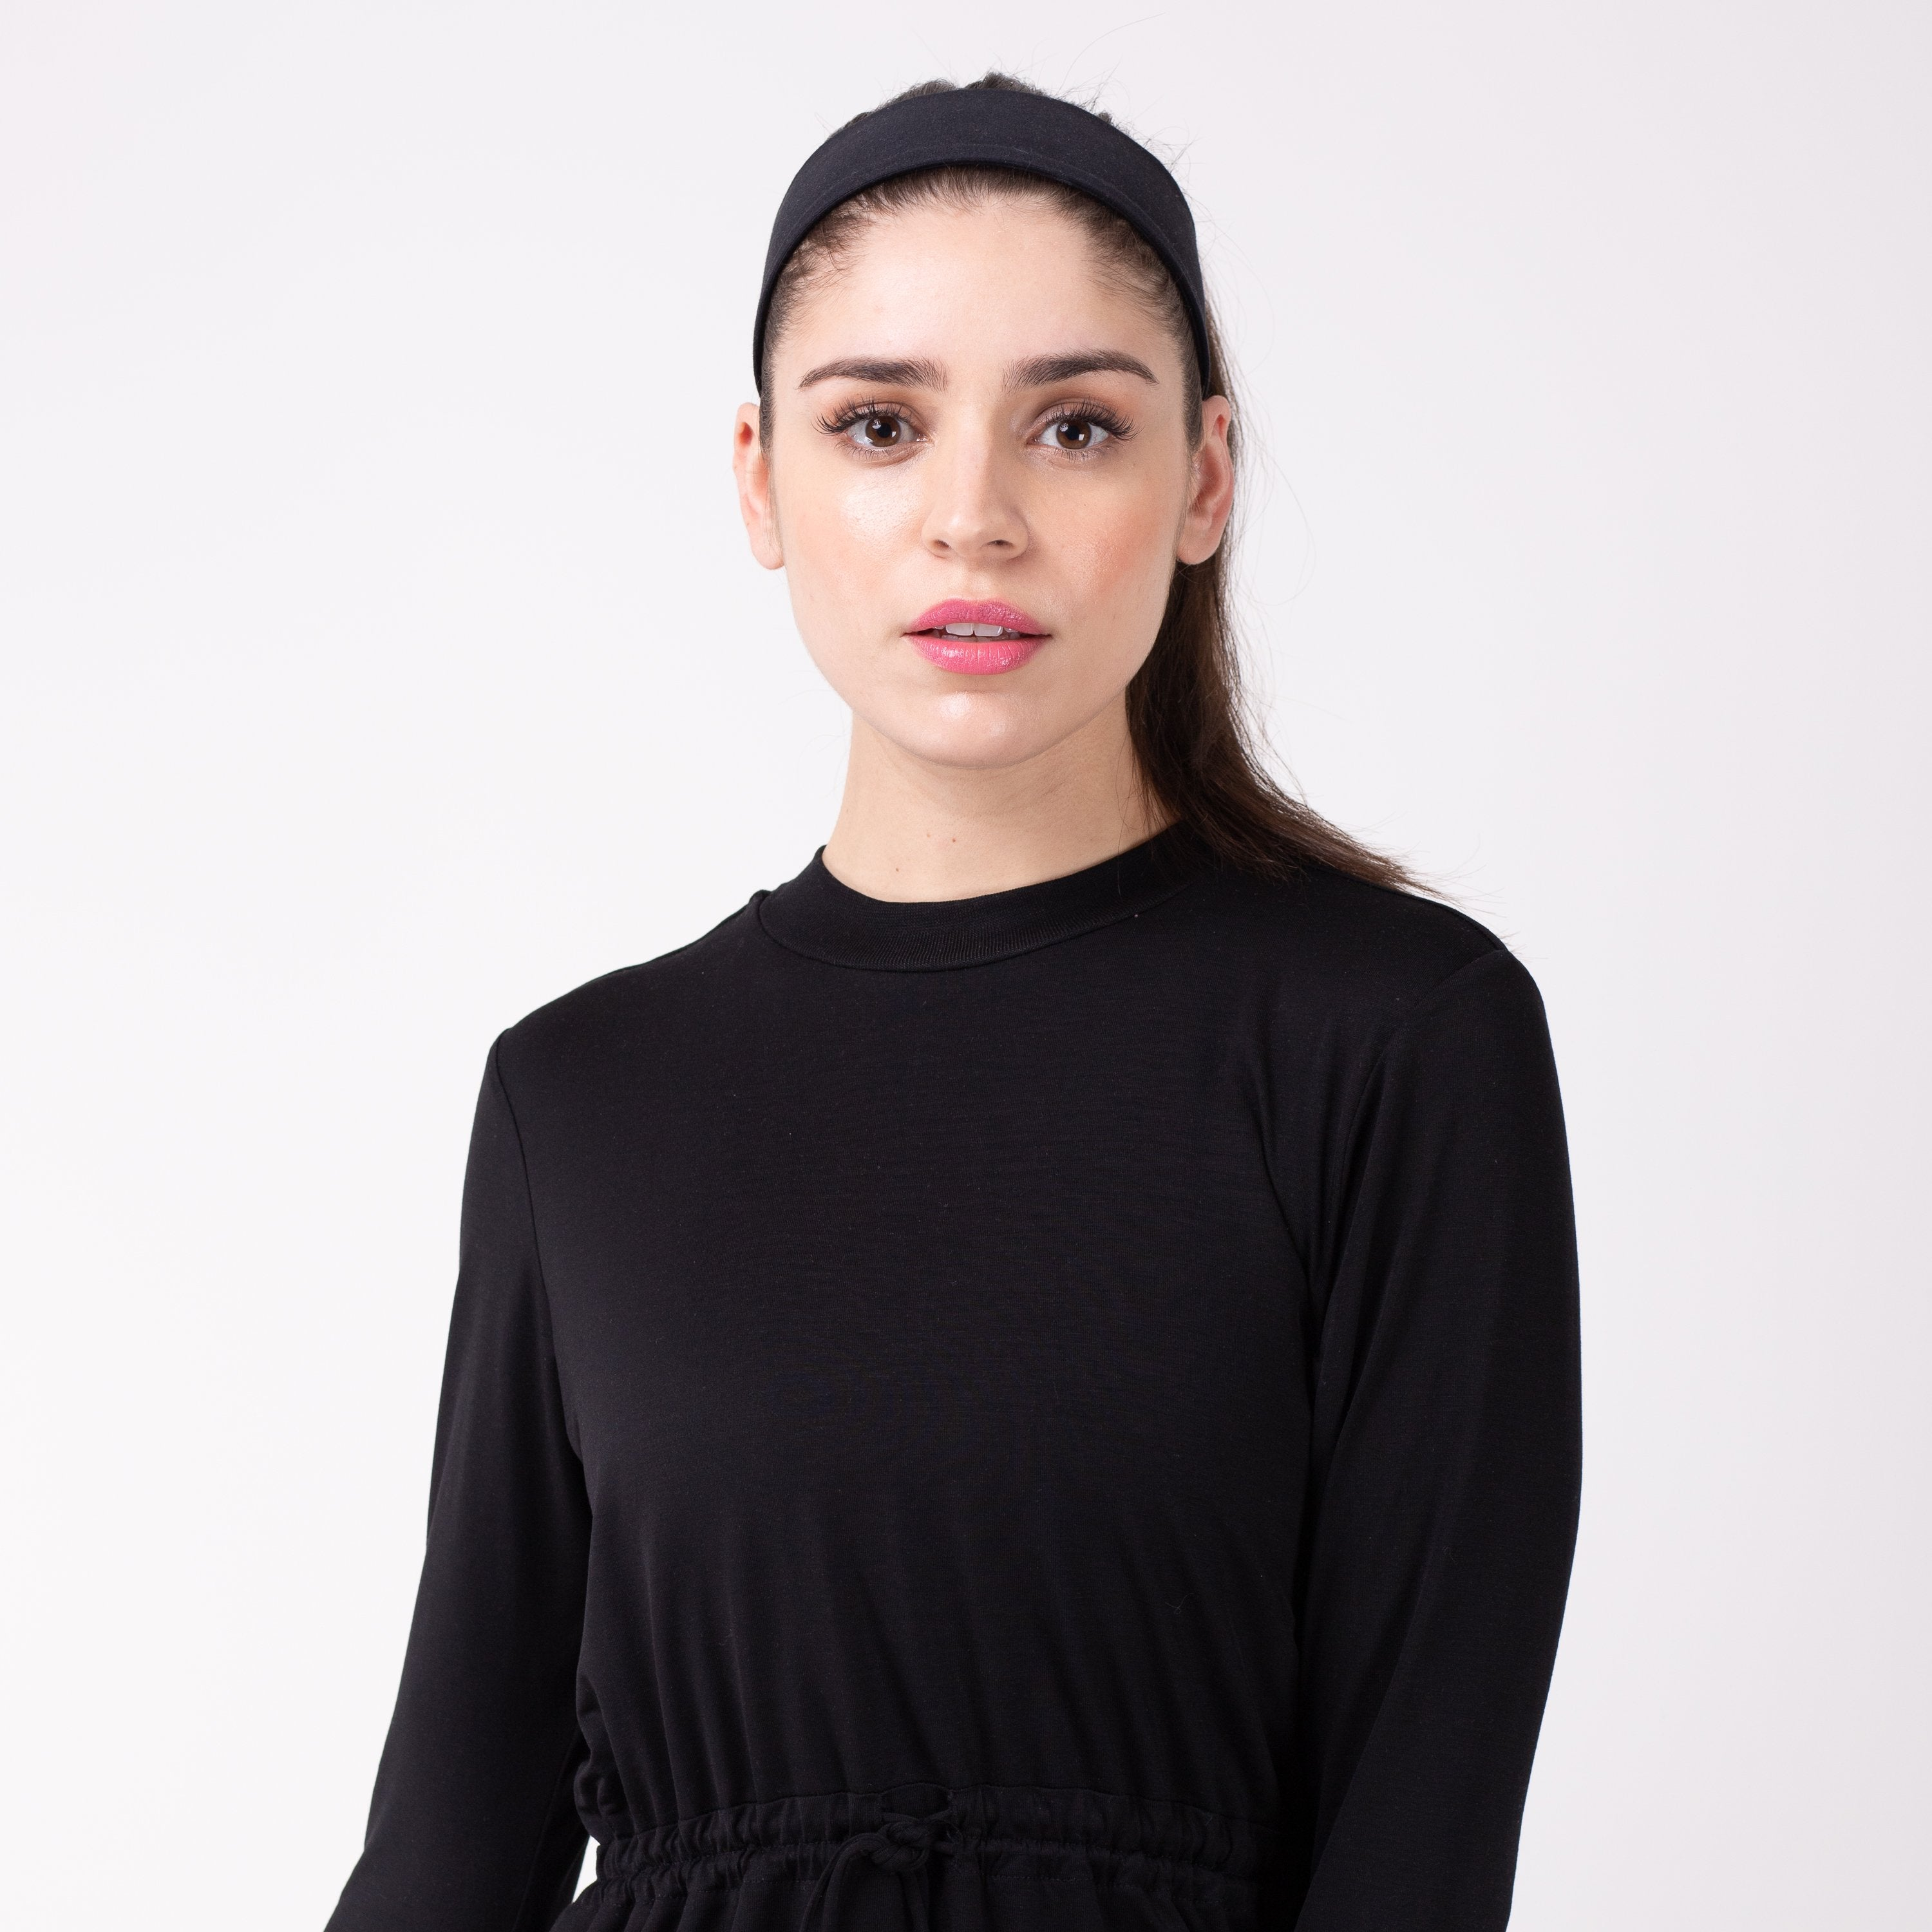 Woman in black shirt with matching black HAWA headband.